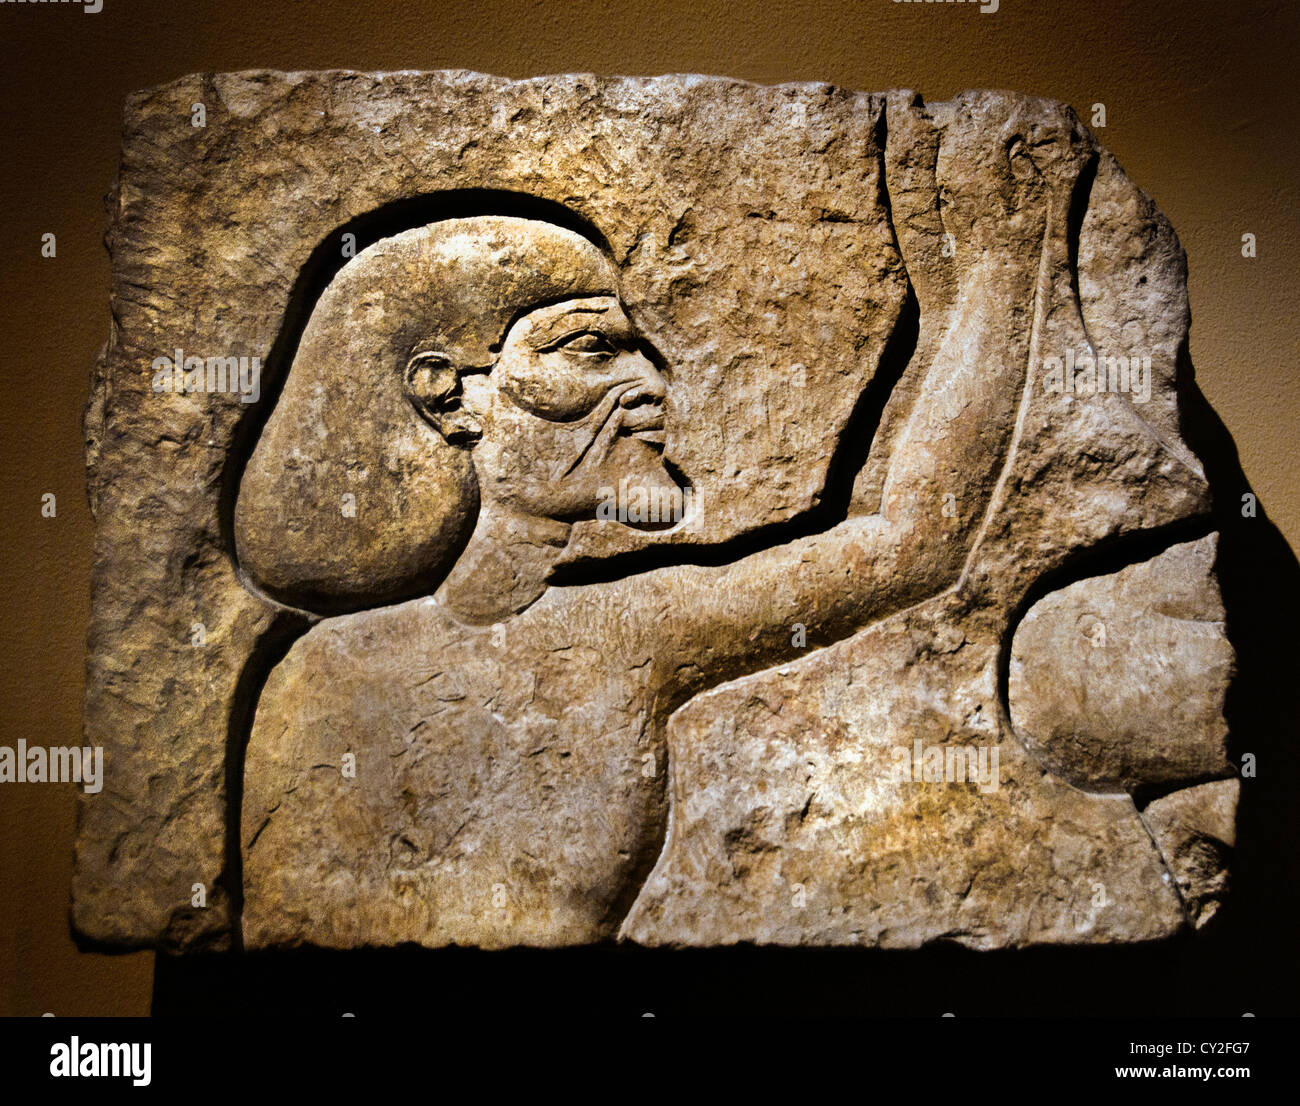 Relief fragment of an Asiatic Prisoner   Pharaoh Ramesses II 19 dynasty 1279 - 1213 BC  Egyptian Egypt - Stock Image